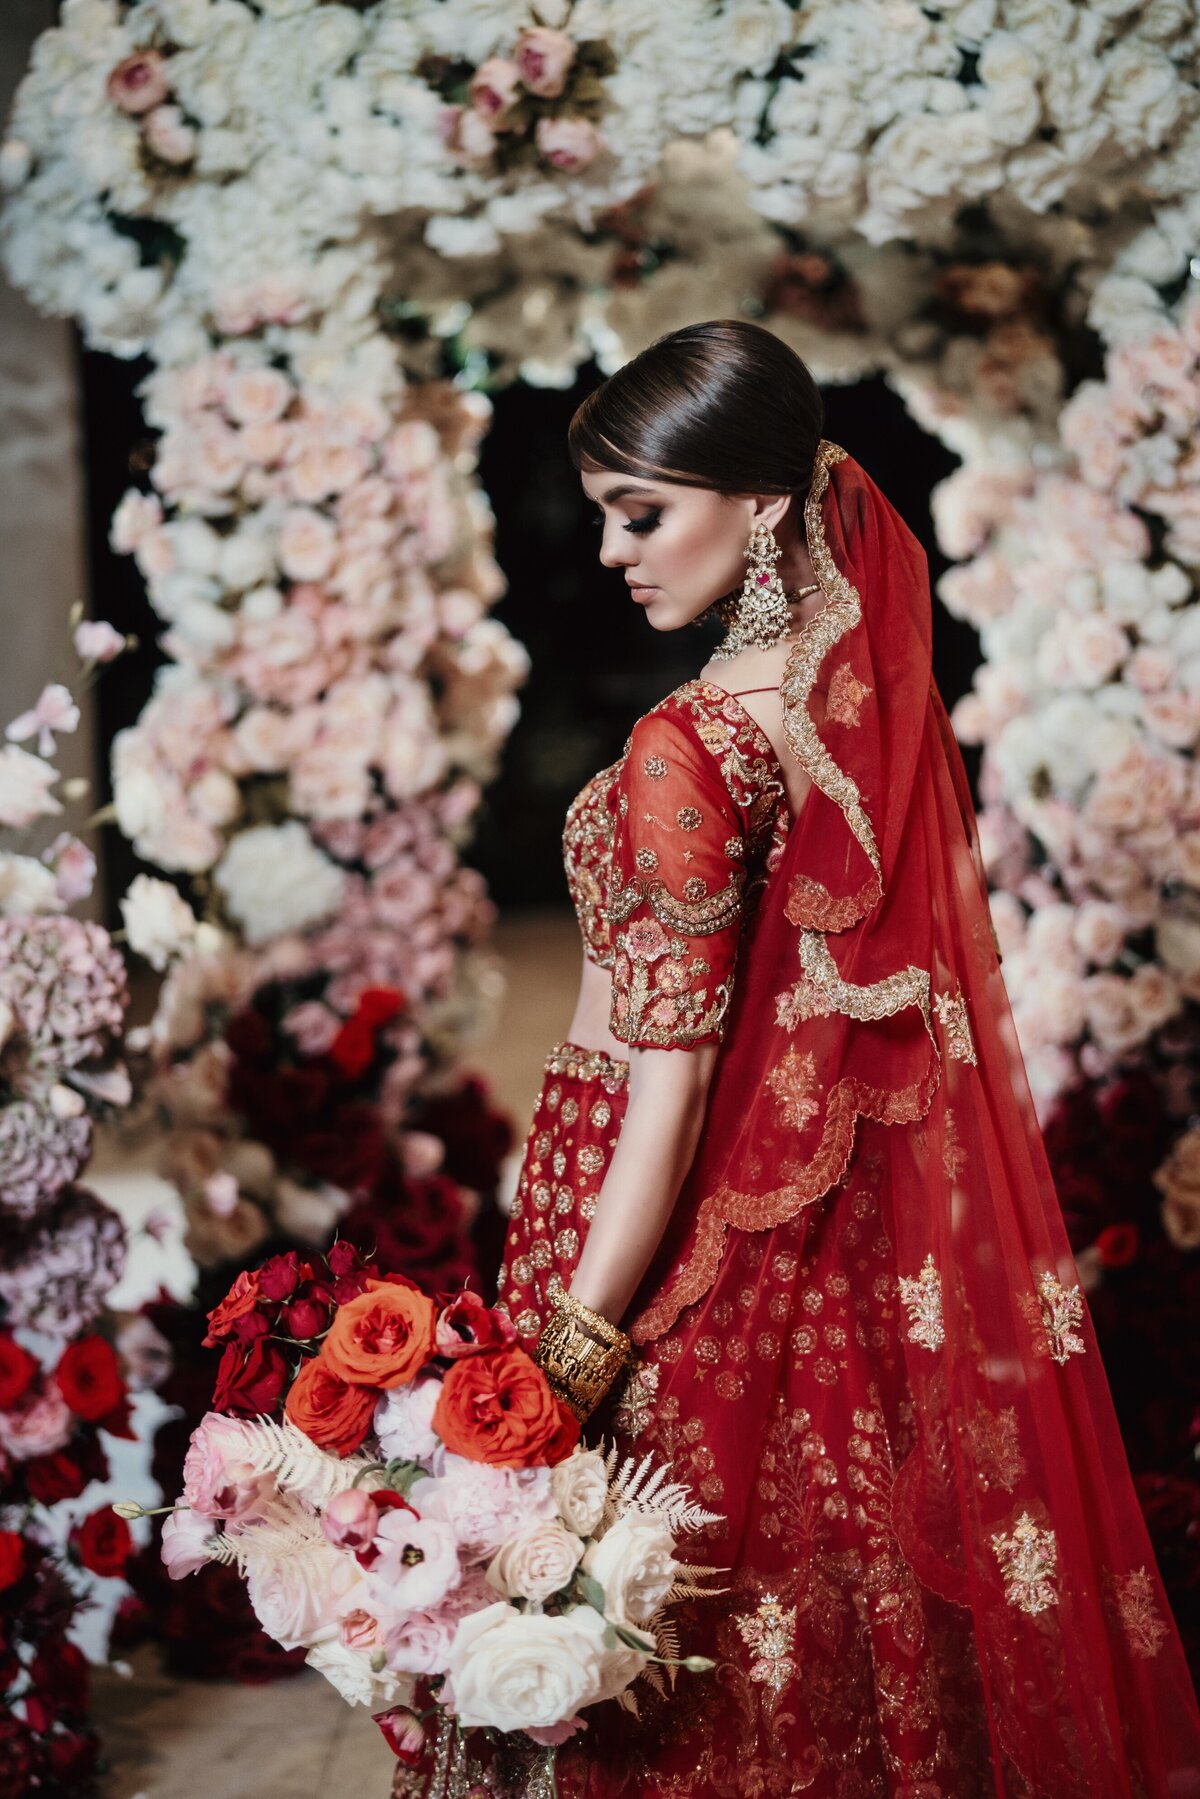 red-white-blush-pink-indian-hindu-sikh-wedding-ceremony-bride-07